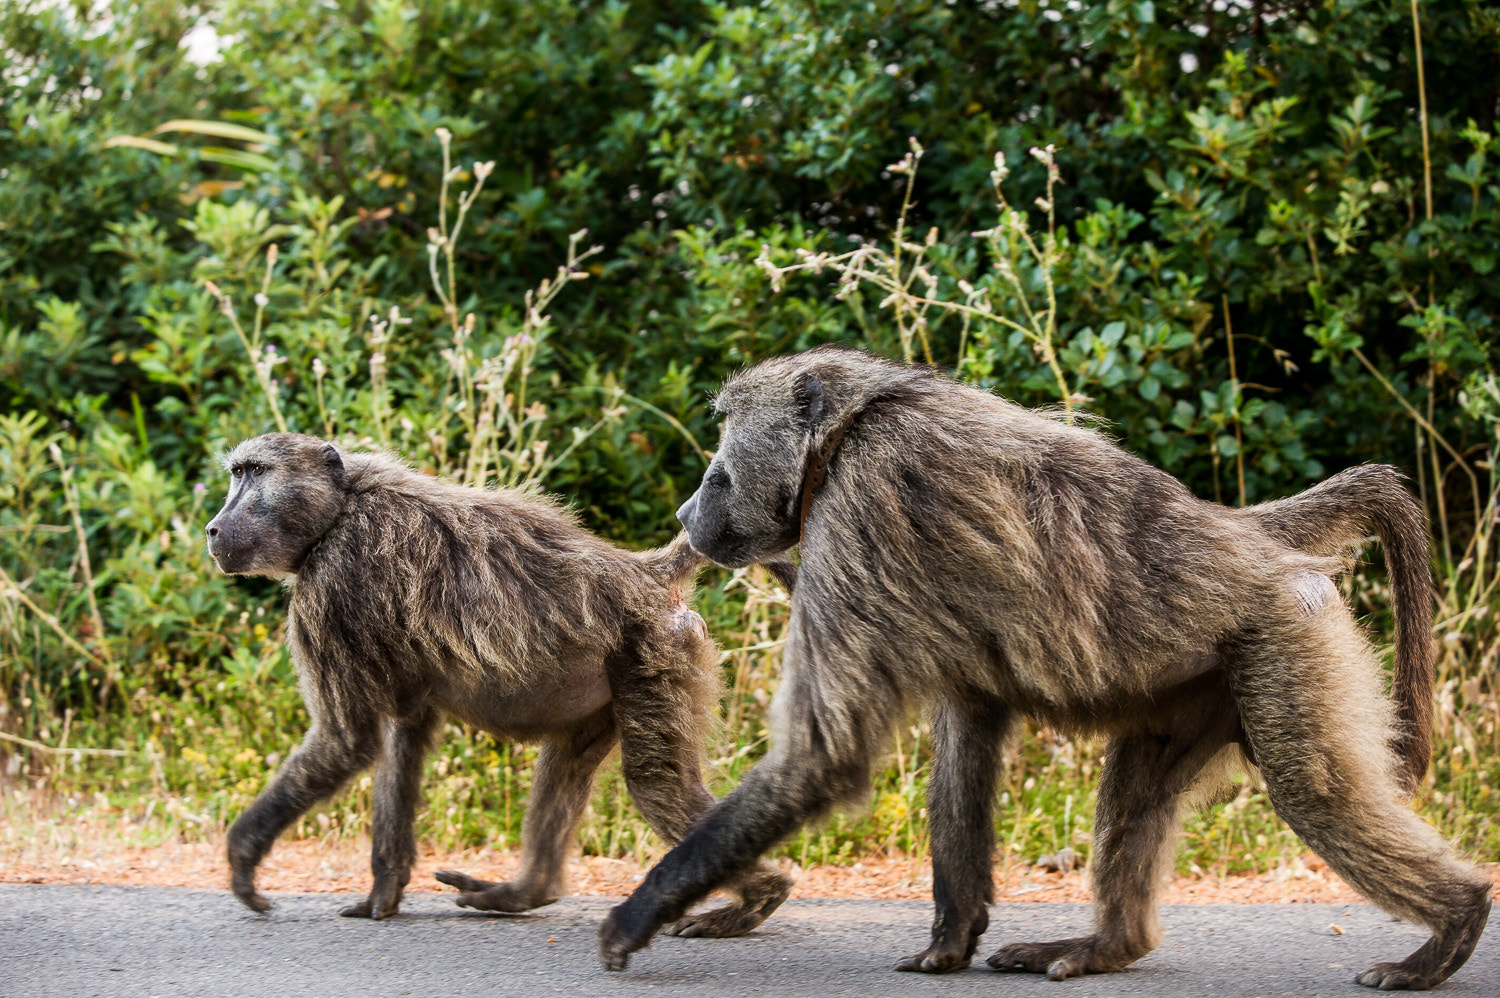 Photograph Cape Baboons by Paul Todd on 500px